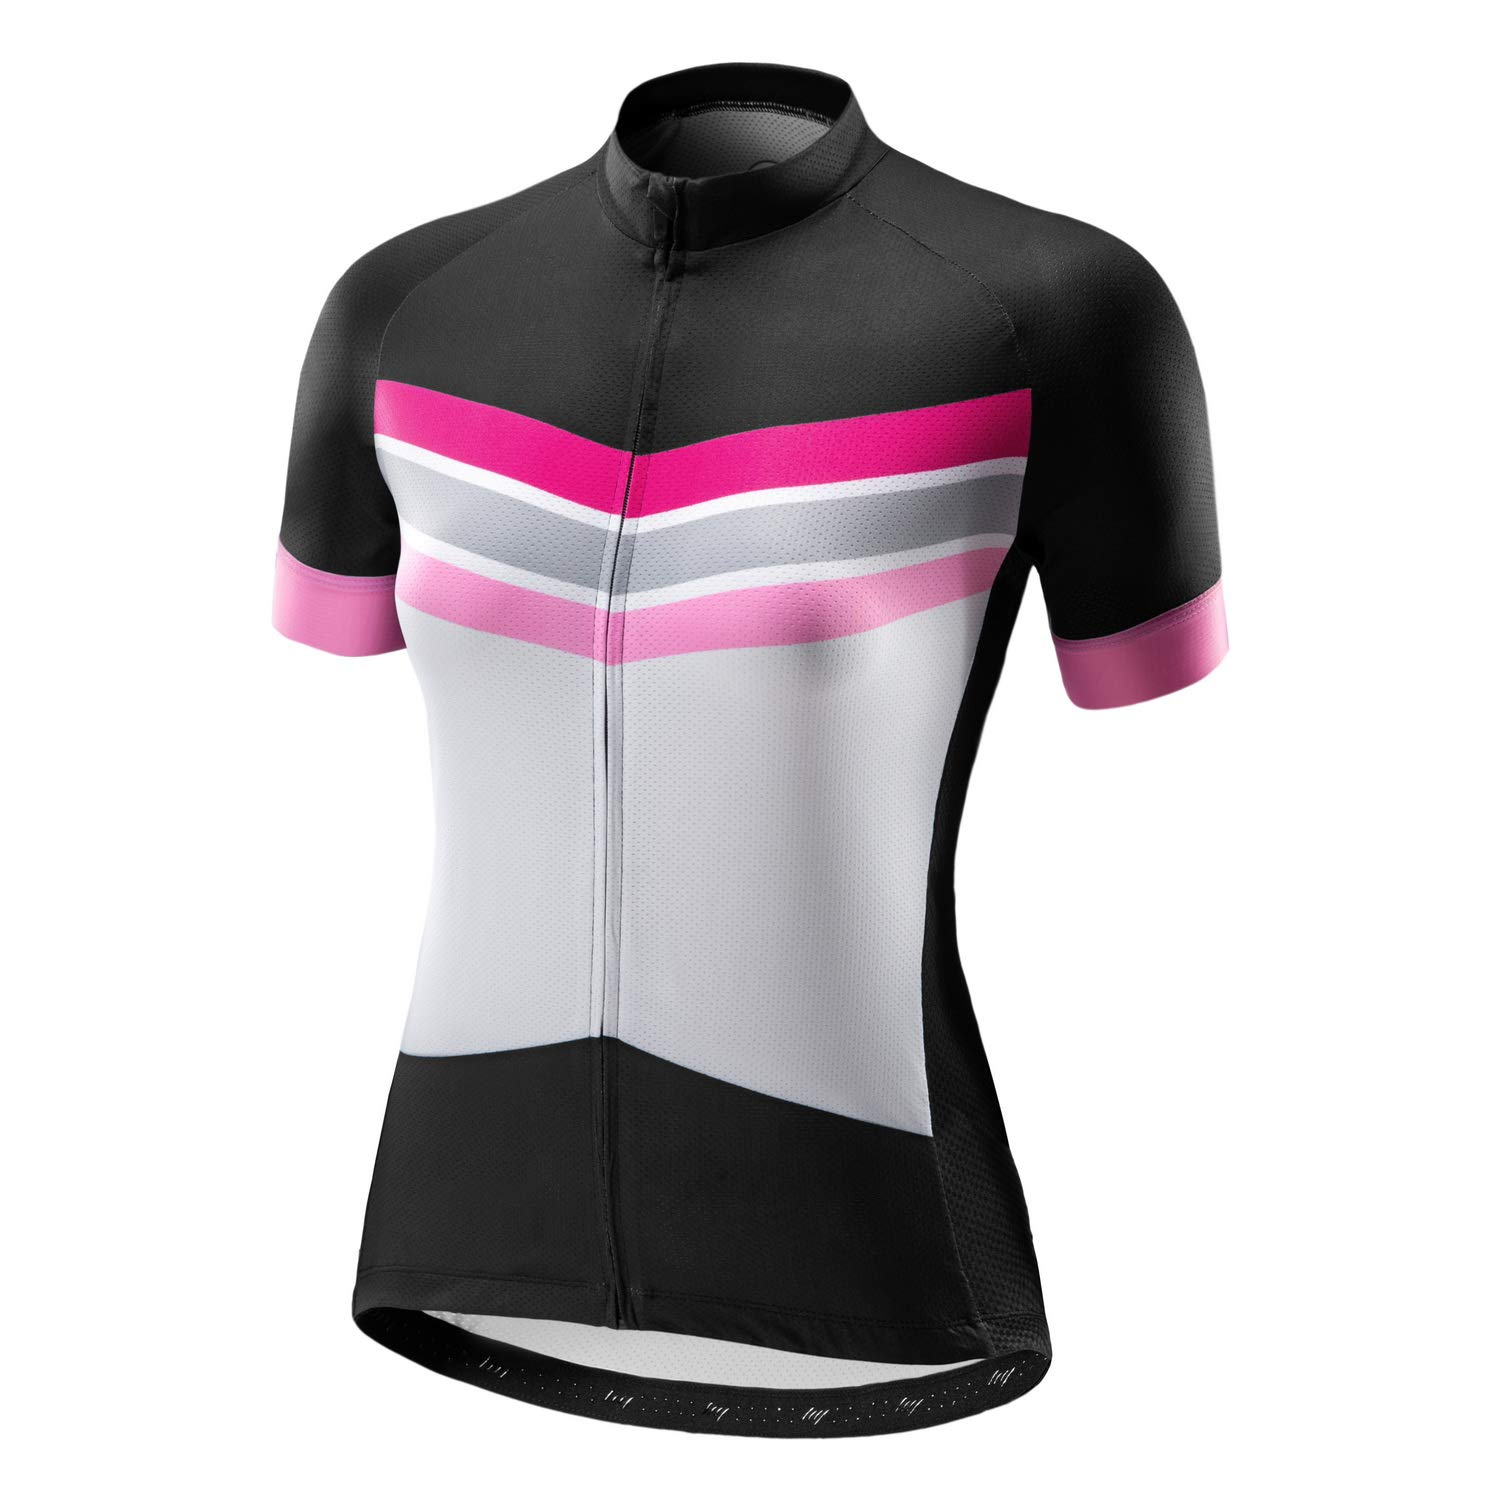 Beory Womens Cycling Jerseys with Short Sleeves,Girls Bike Short Sleeves with Three Pockets(S Pink) by beroy